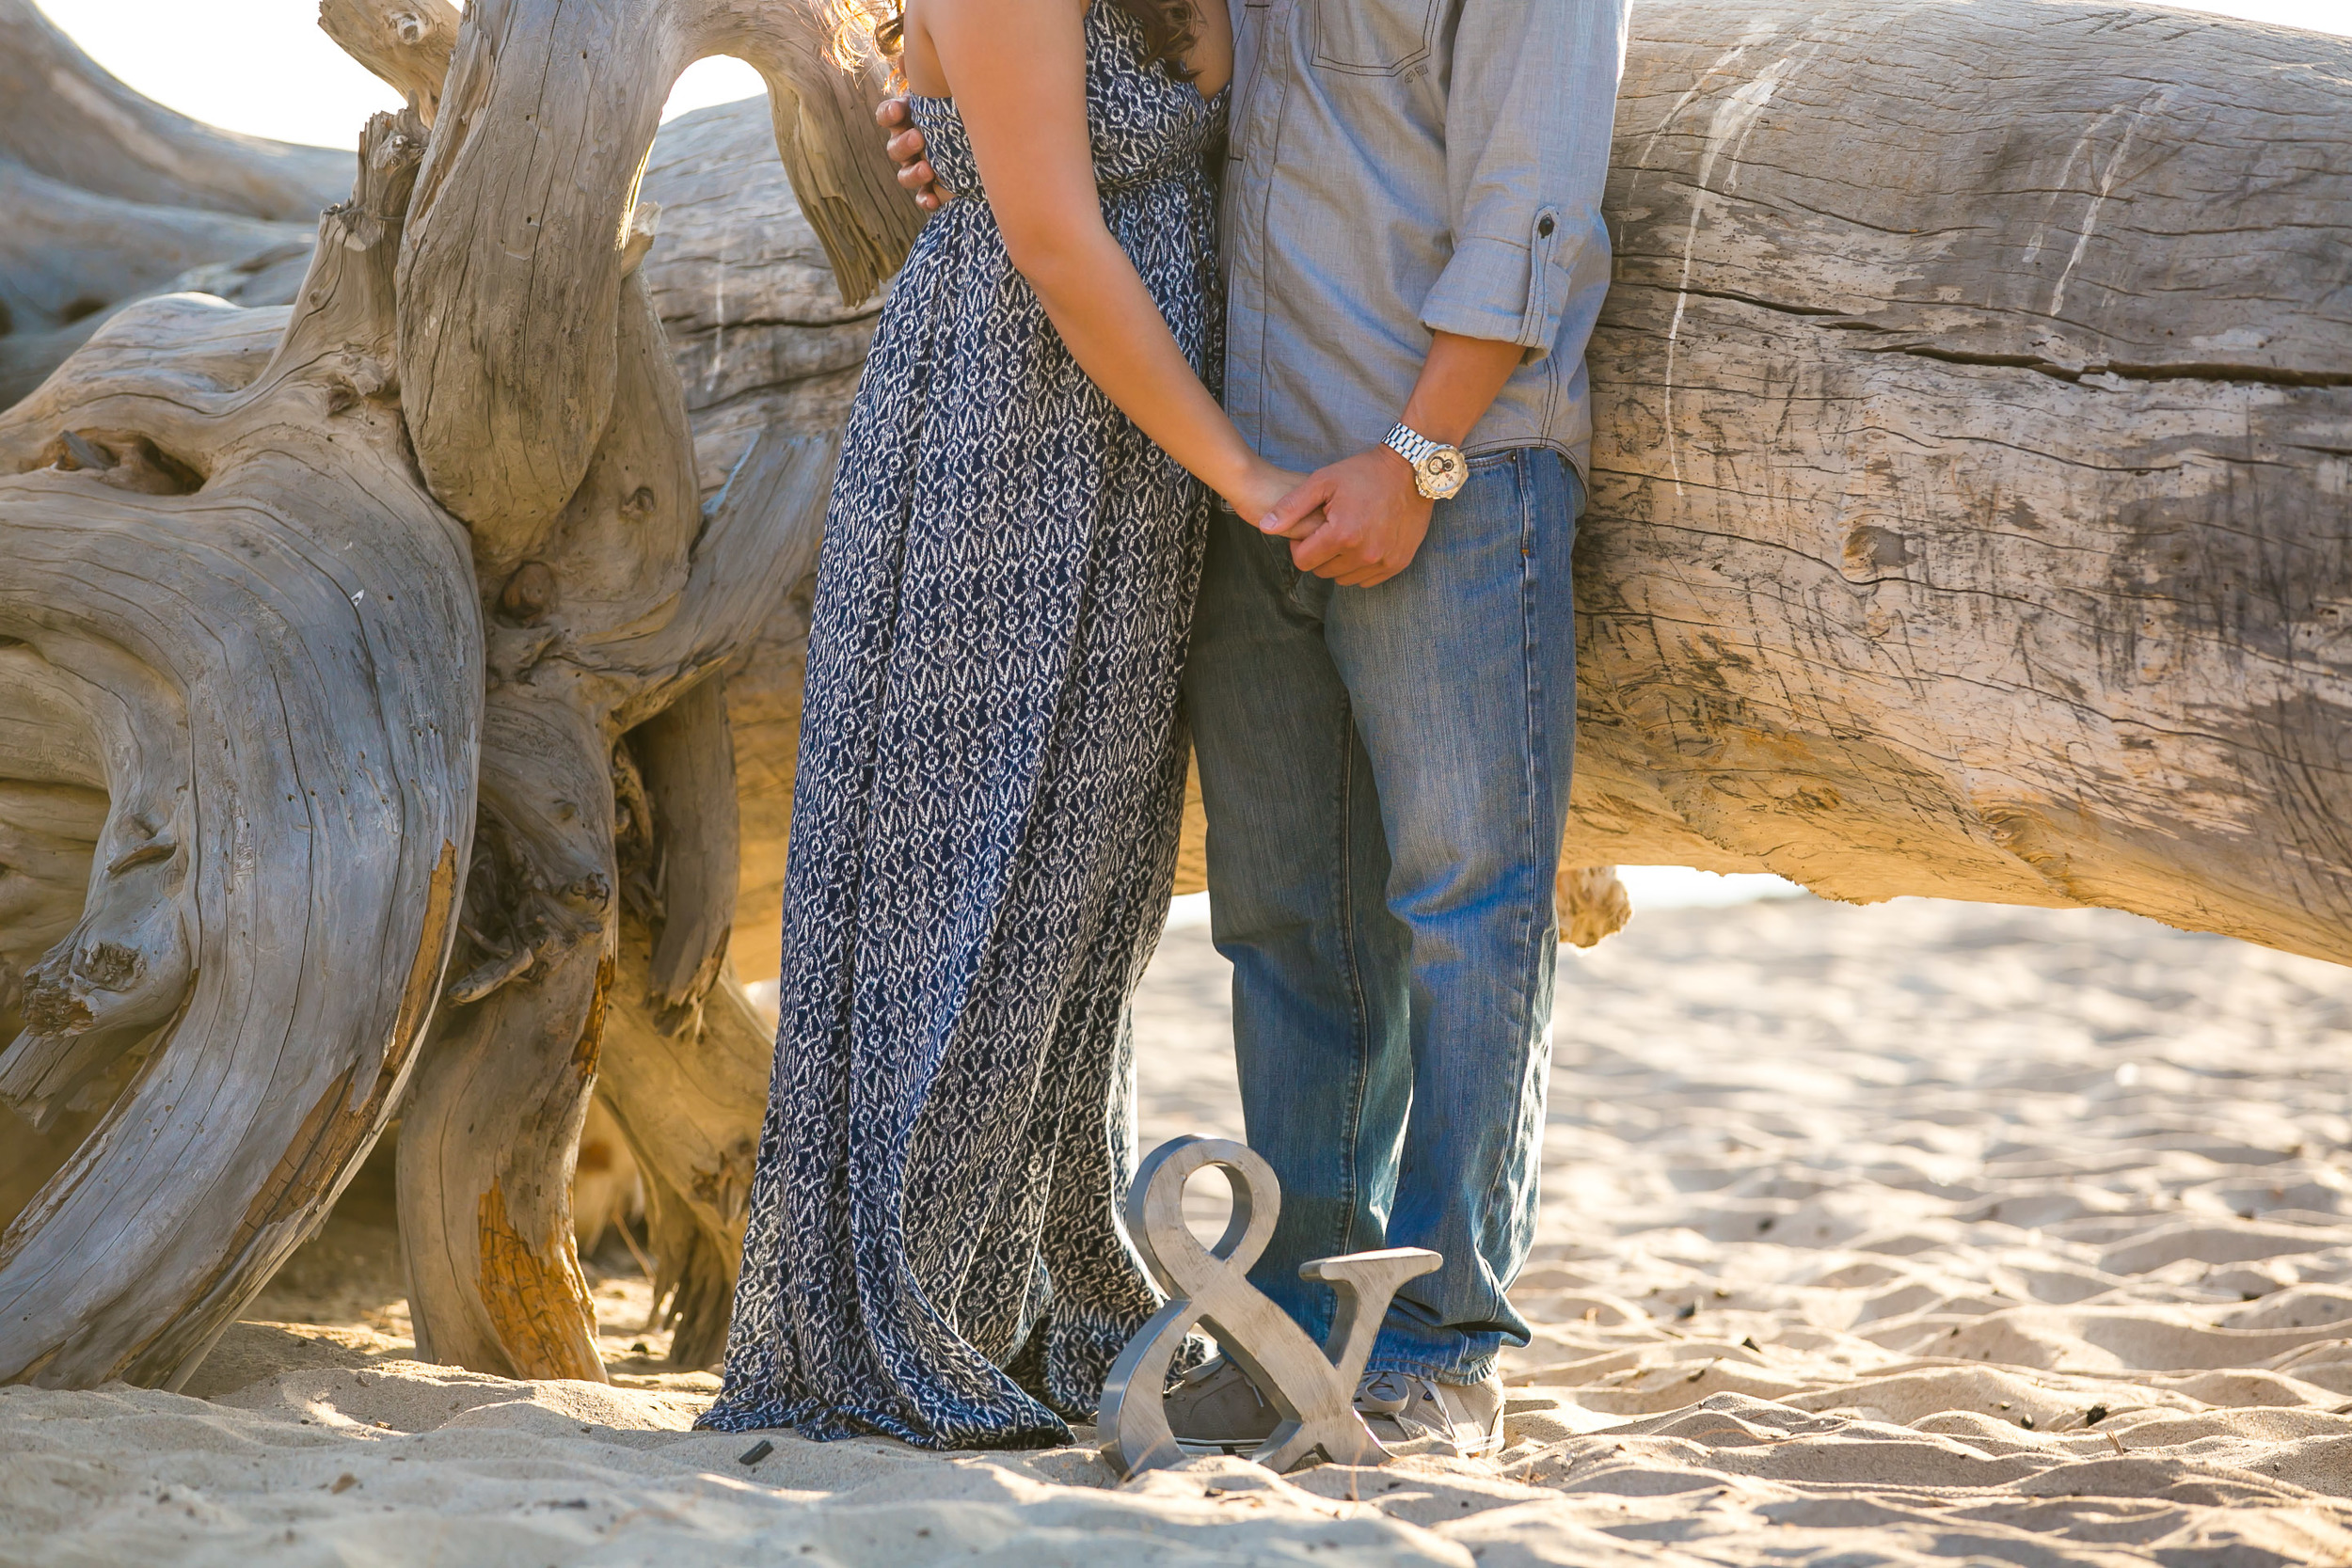 20131020_CHRIS_JEFF_MALIBU_BEACH_ENGAGEMENT_CHRIS_HOLT_PHOTOGRAPHY_004.jpg